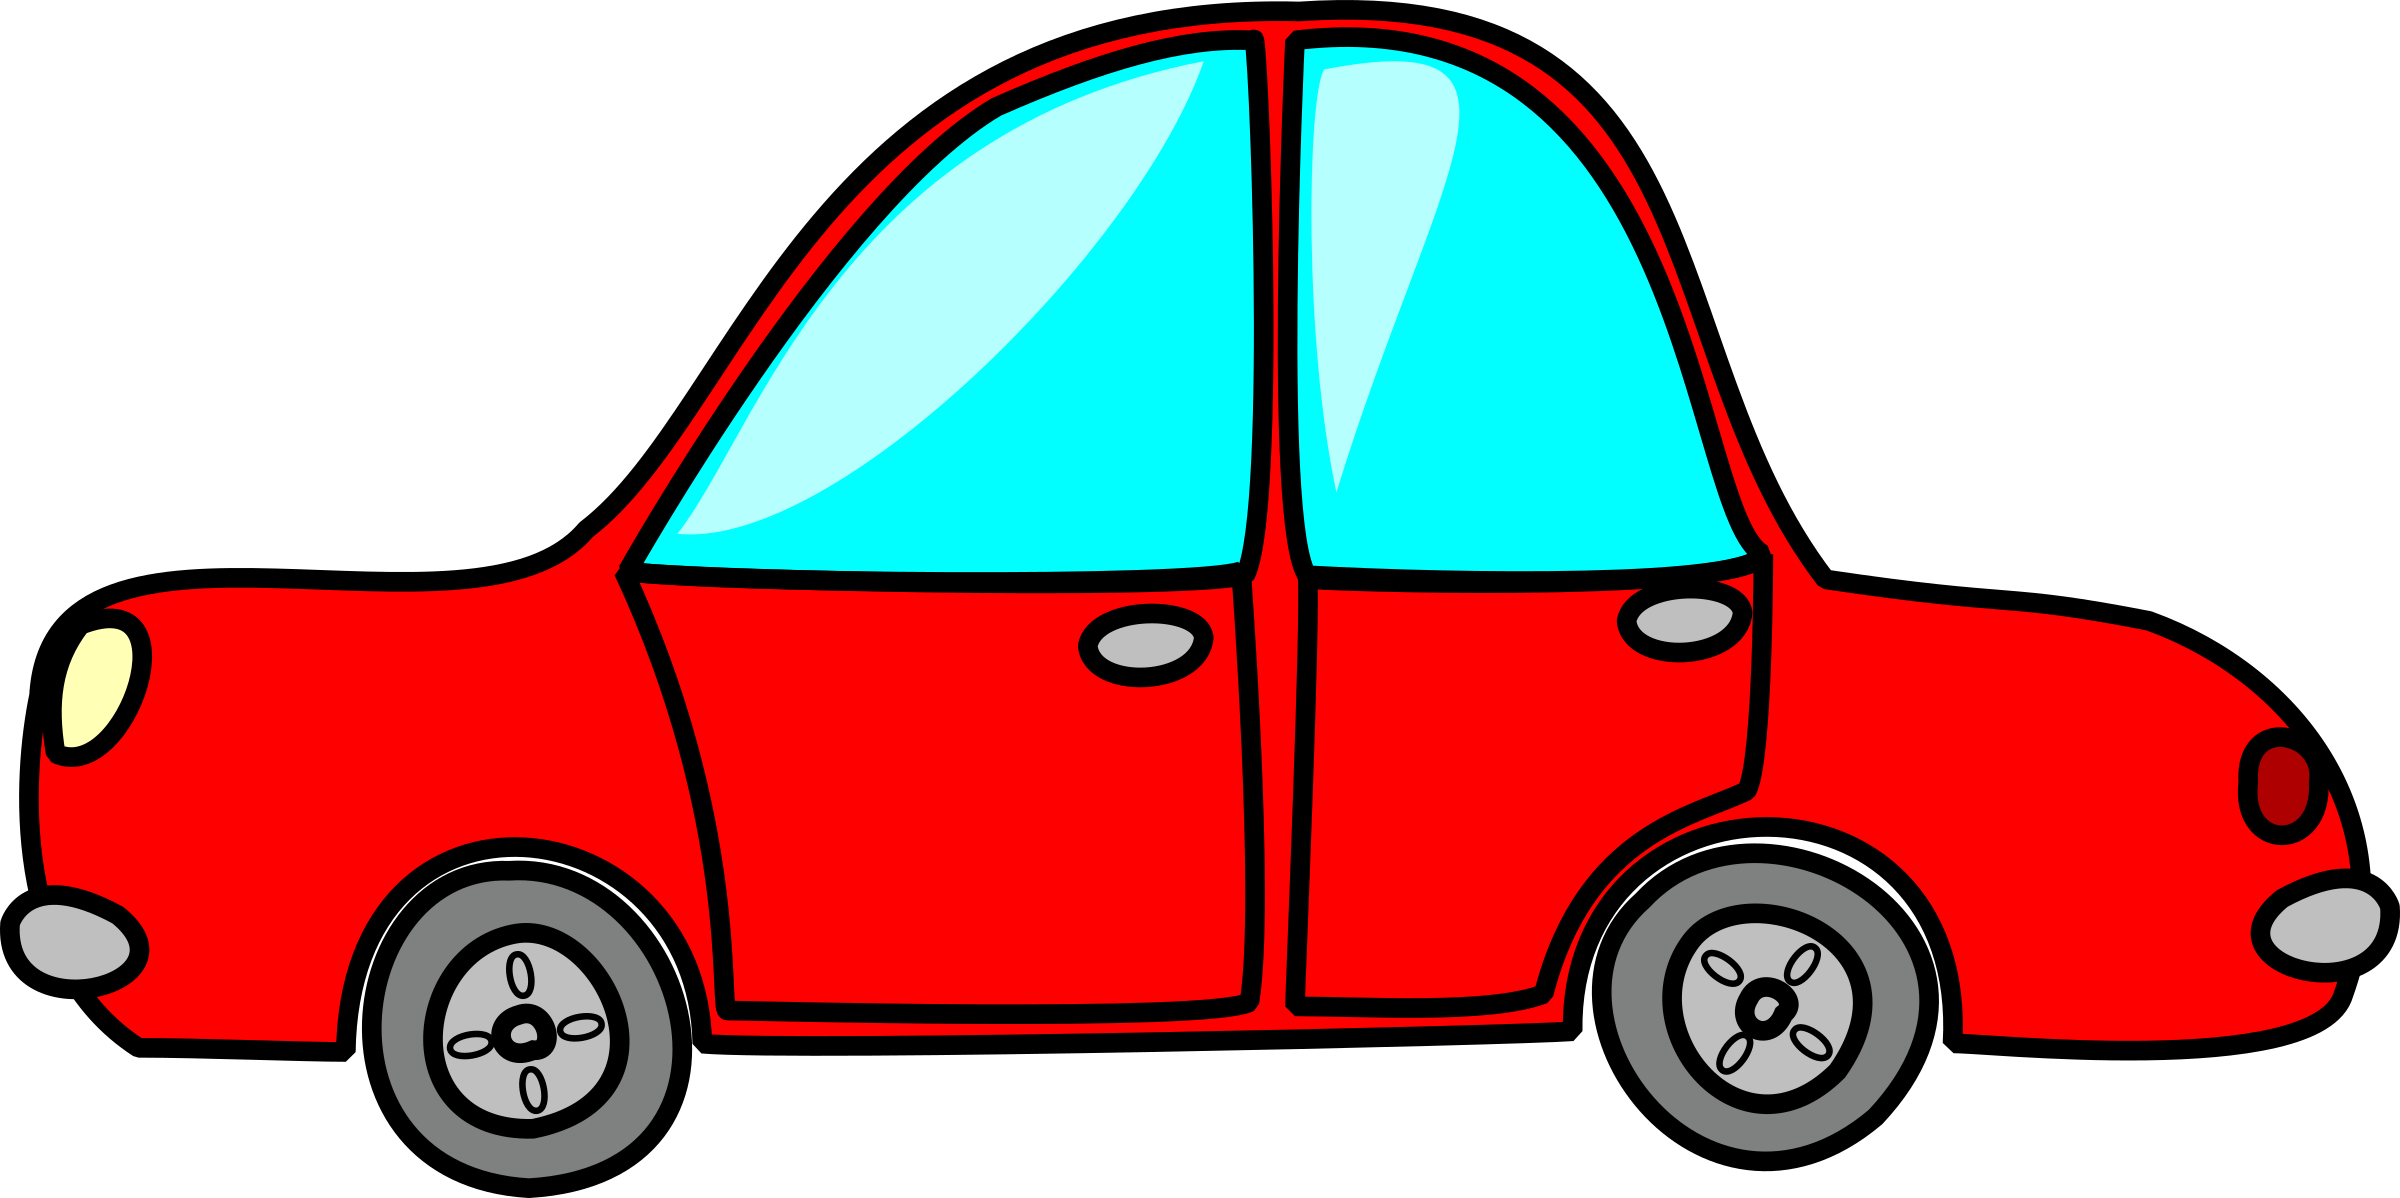 Clipart - Toy car